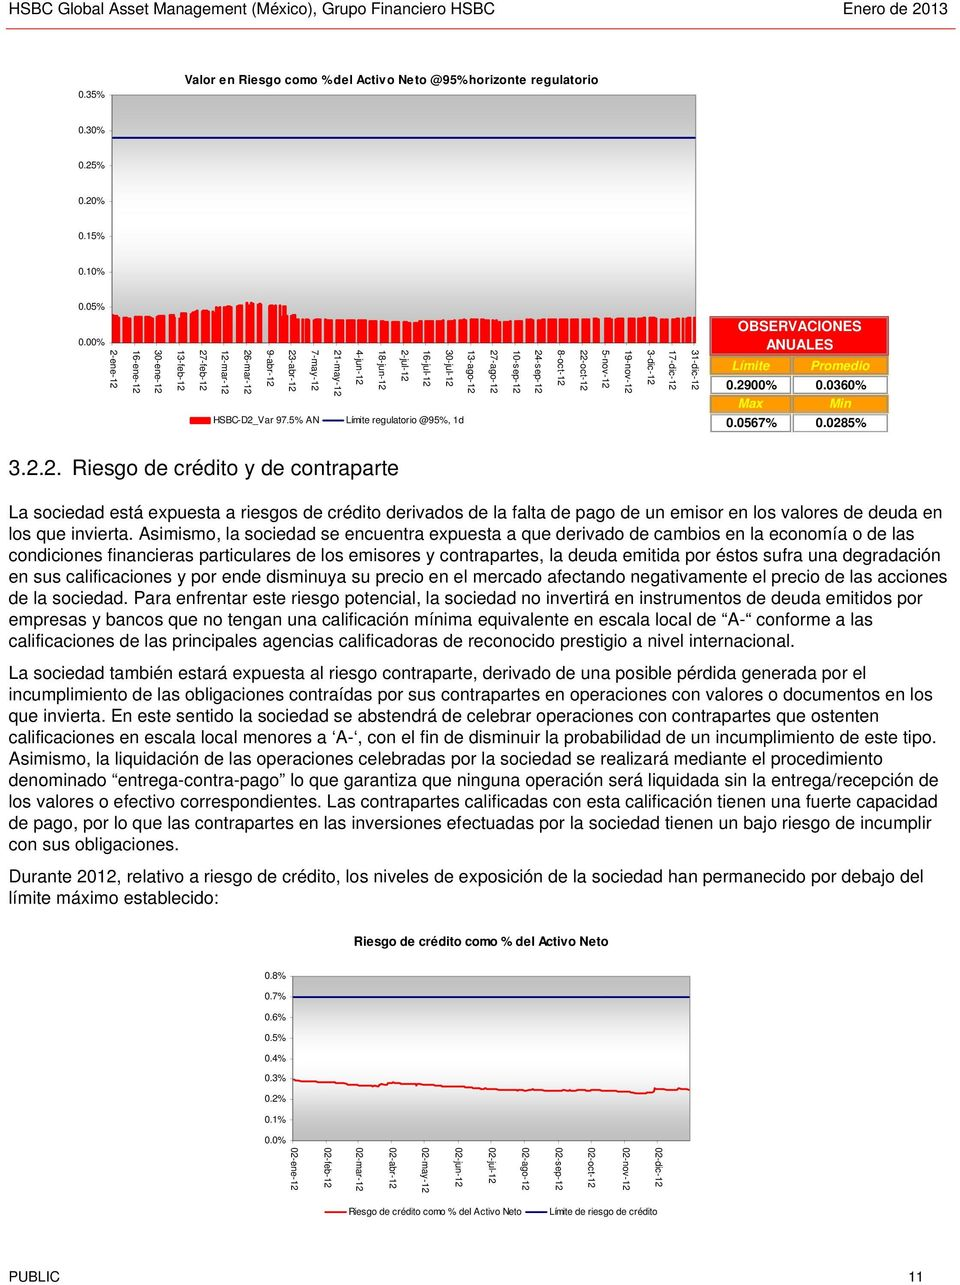 5% AN 13-ago-12 30-jul-12 16-jul-12 2-jul-12 18-jun-12 4-jun-12 21-may-12 Límite regulatorio @95%, 1d 27-ago-12 10-sep-12 24-sep-12 8-oct-12 22-oct-12 5-nov-12 19-nov-12 3-dic-12 17-dic-12 31-dic-12